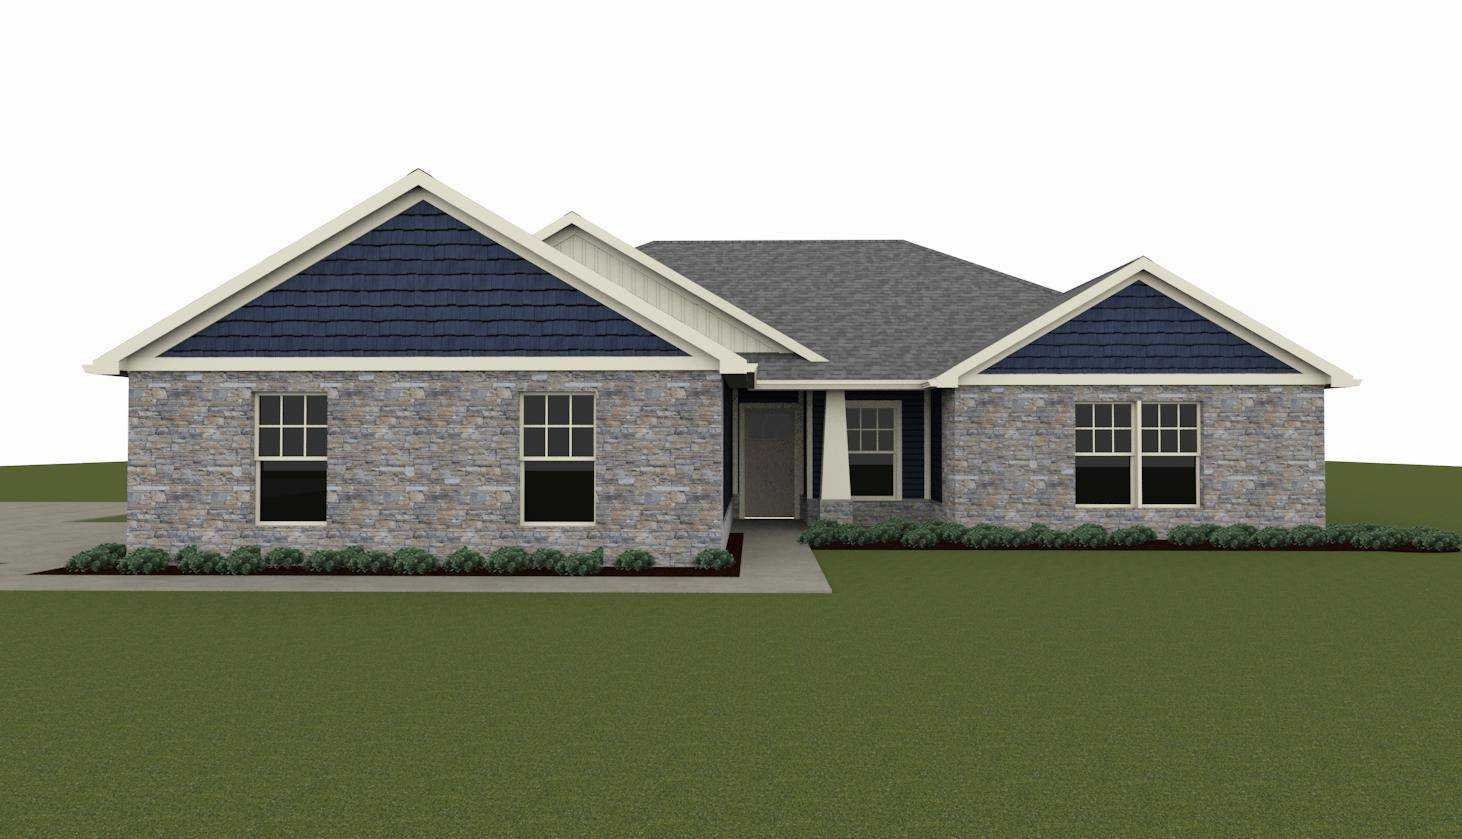 Lot 30 - Brookstone Estates VI - Kerstiens Homes Kerstiens Homes Floor Plans And Designs on two-story floor plan house designs, rustic home designs, eco-friendly small home designs, small modern house designs, brick townhouse plans designs, boat floor plan designs, house plans 6 bedrooms designs, ranch floor plans home designs, home plans architectural digest, 3 bedroom house plan designs, home prices and floor plans to build, floor plans small home designs, house plan your own designs, home living room design ideas, frank lloyd wright inspired house designs, driveway brick entrance designs, australian floor plans home designs, luxury house designs, home open floor plan, basic designs,